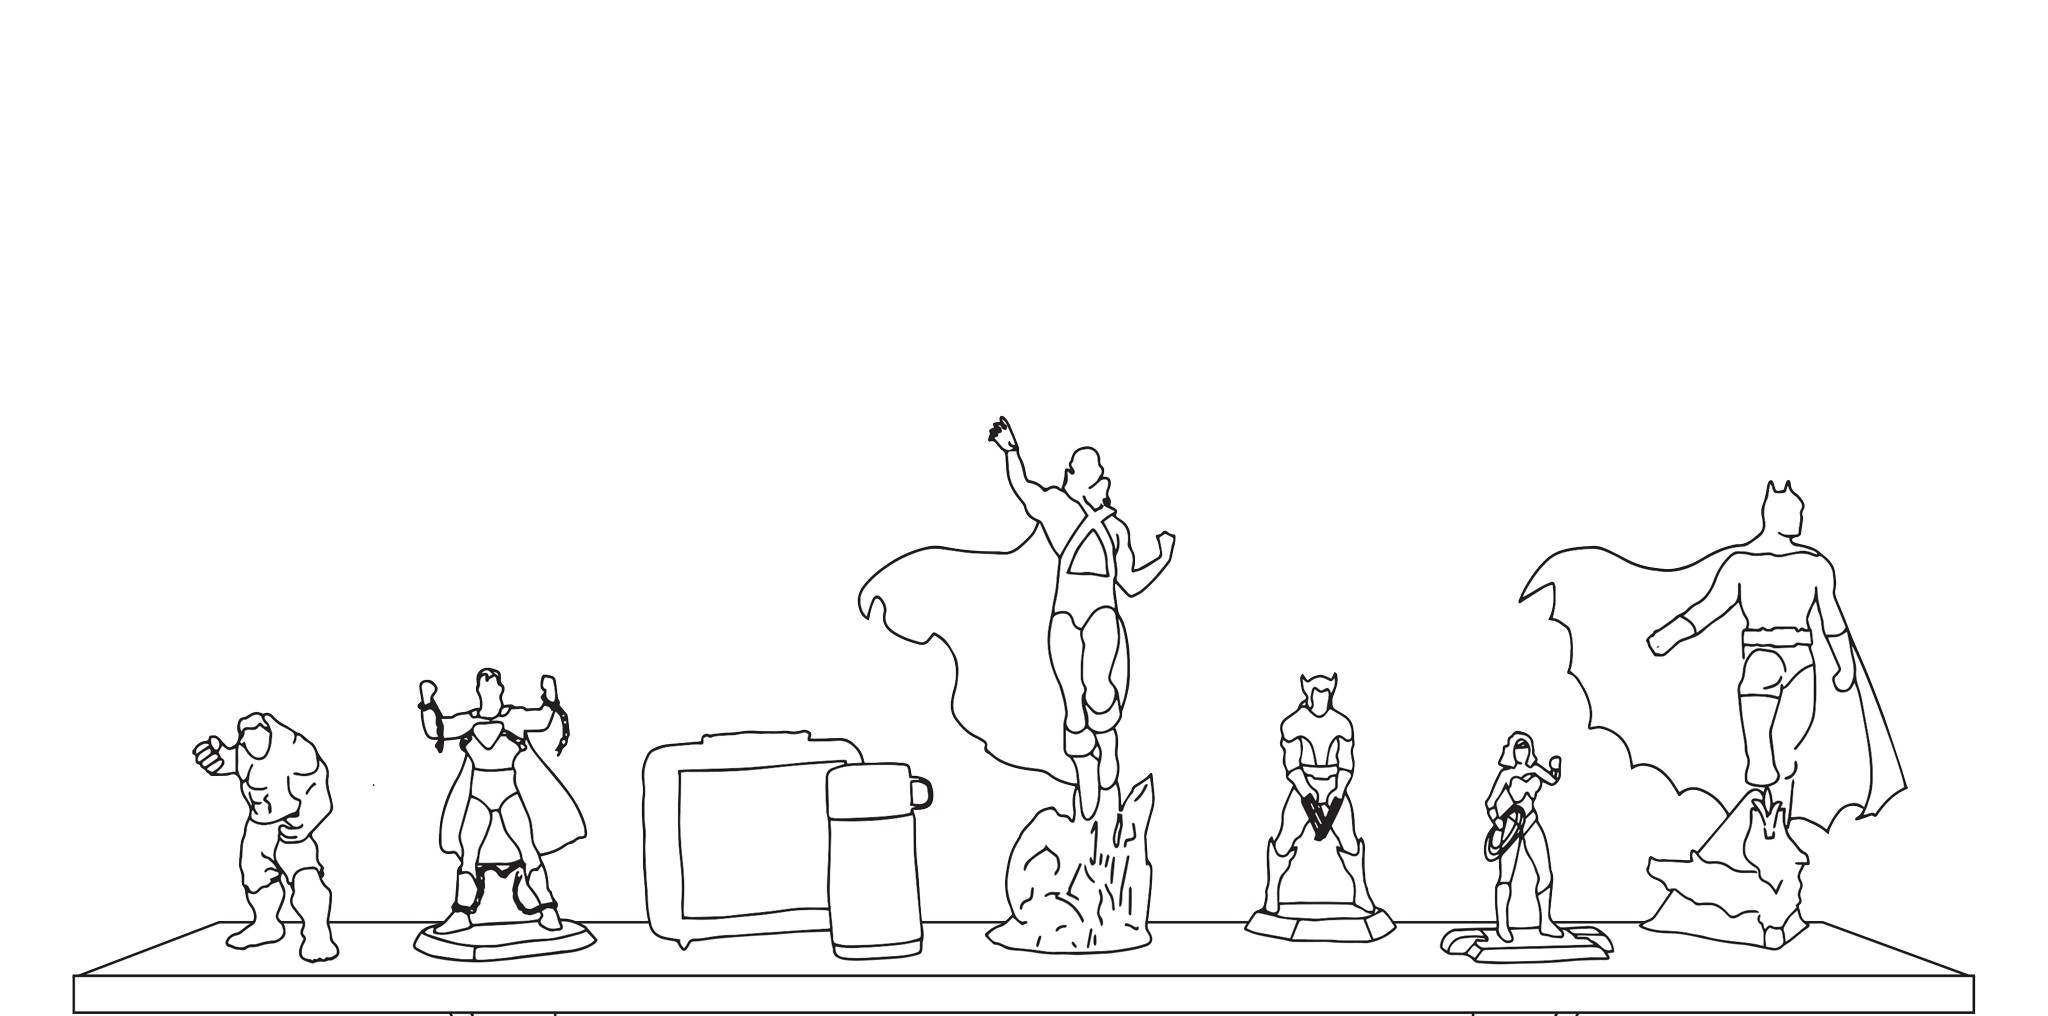 A line drawing of superhero figurines lined up on a shelf.